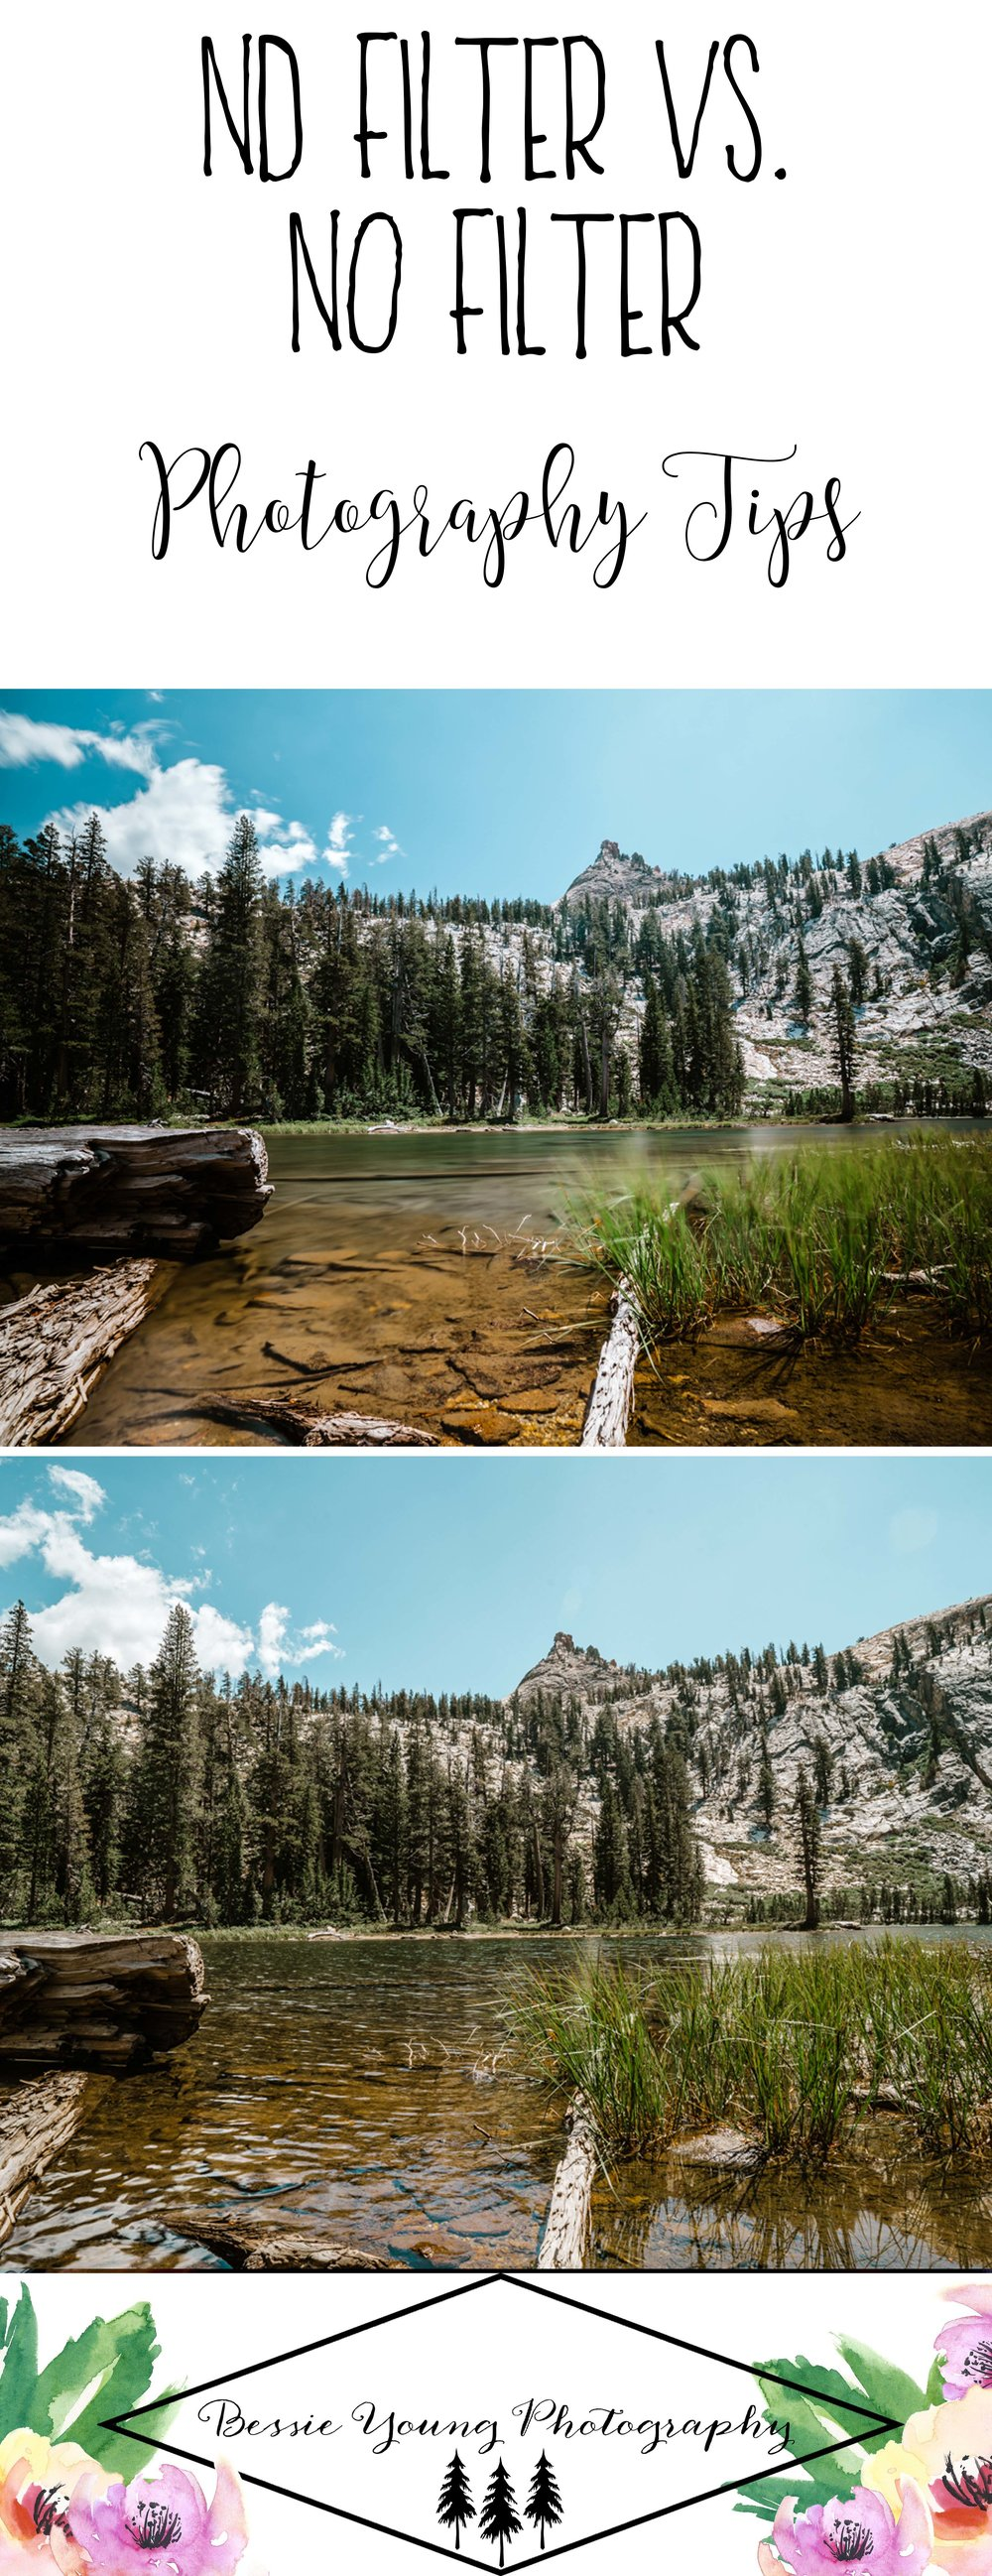 ND Filter vs No filter Landscape Photography Tips and tricks by Bessie Young Photography Landscape Photography.jpg